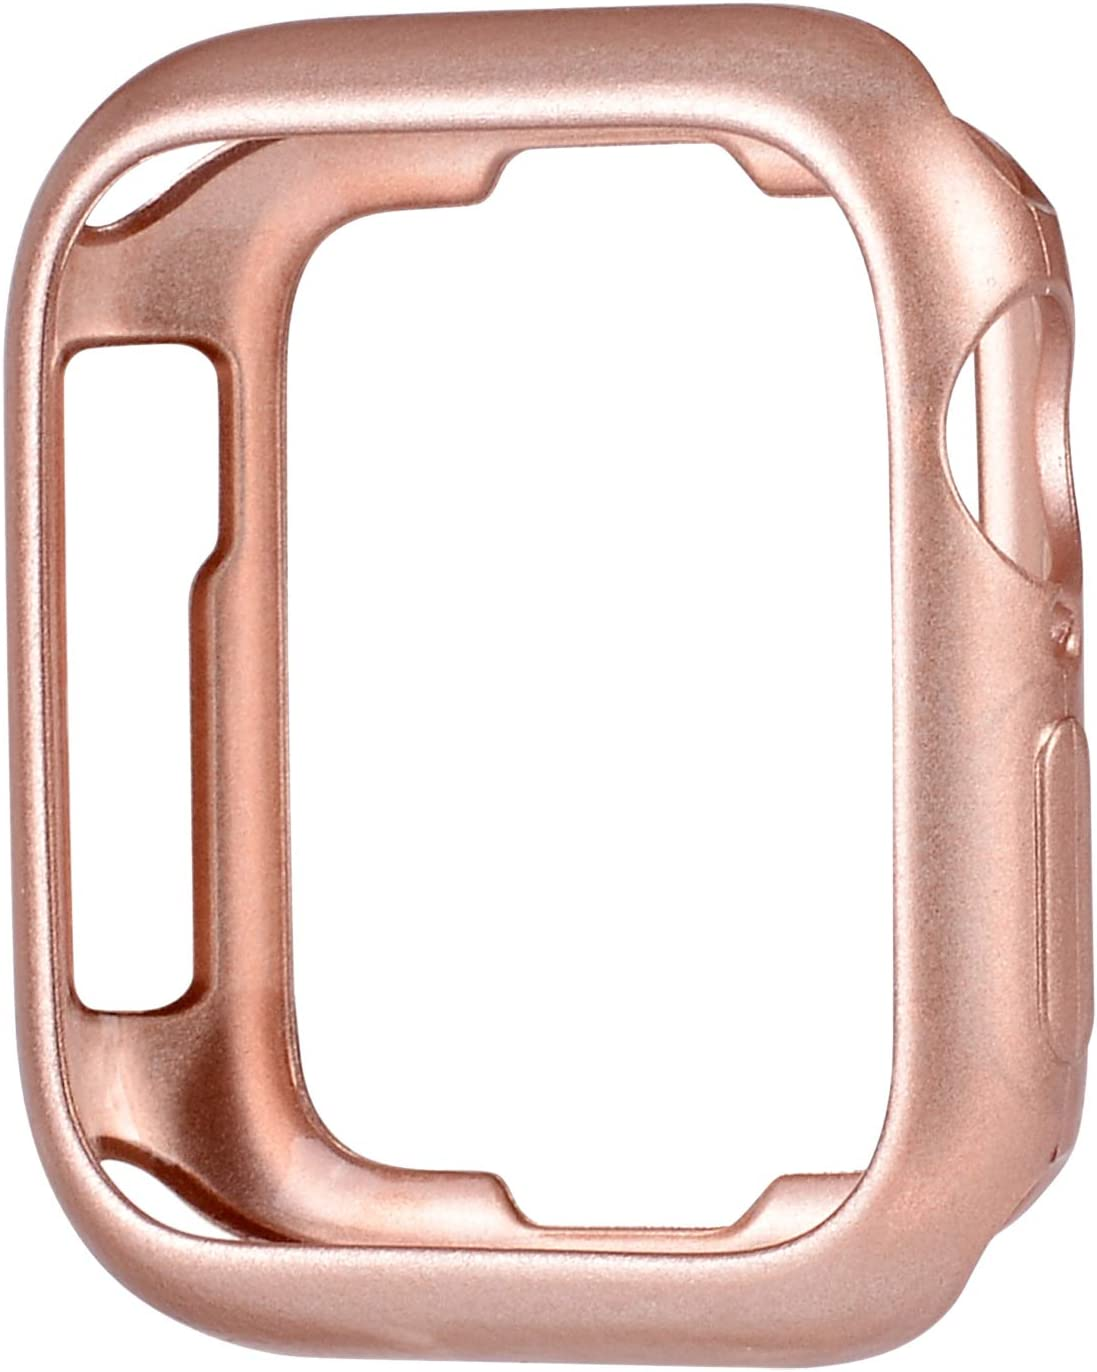 JSGJMY Soft TPU Case Compatible with Apple Watch 38mm 40mm Series 5,Series 4,Series 3,Series 2,Series 1 (Series 5/4/3 Rose Gold, 38mm/40mm)